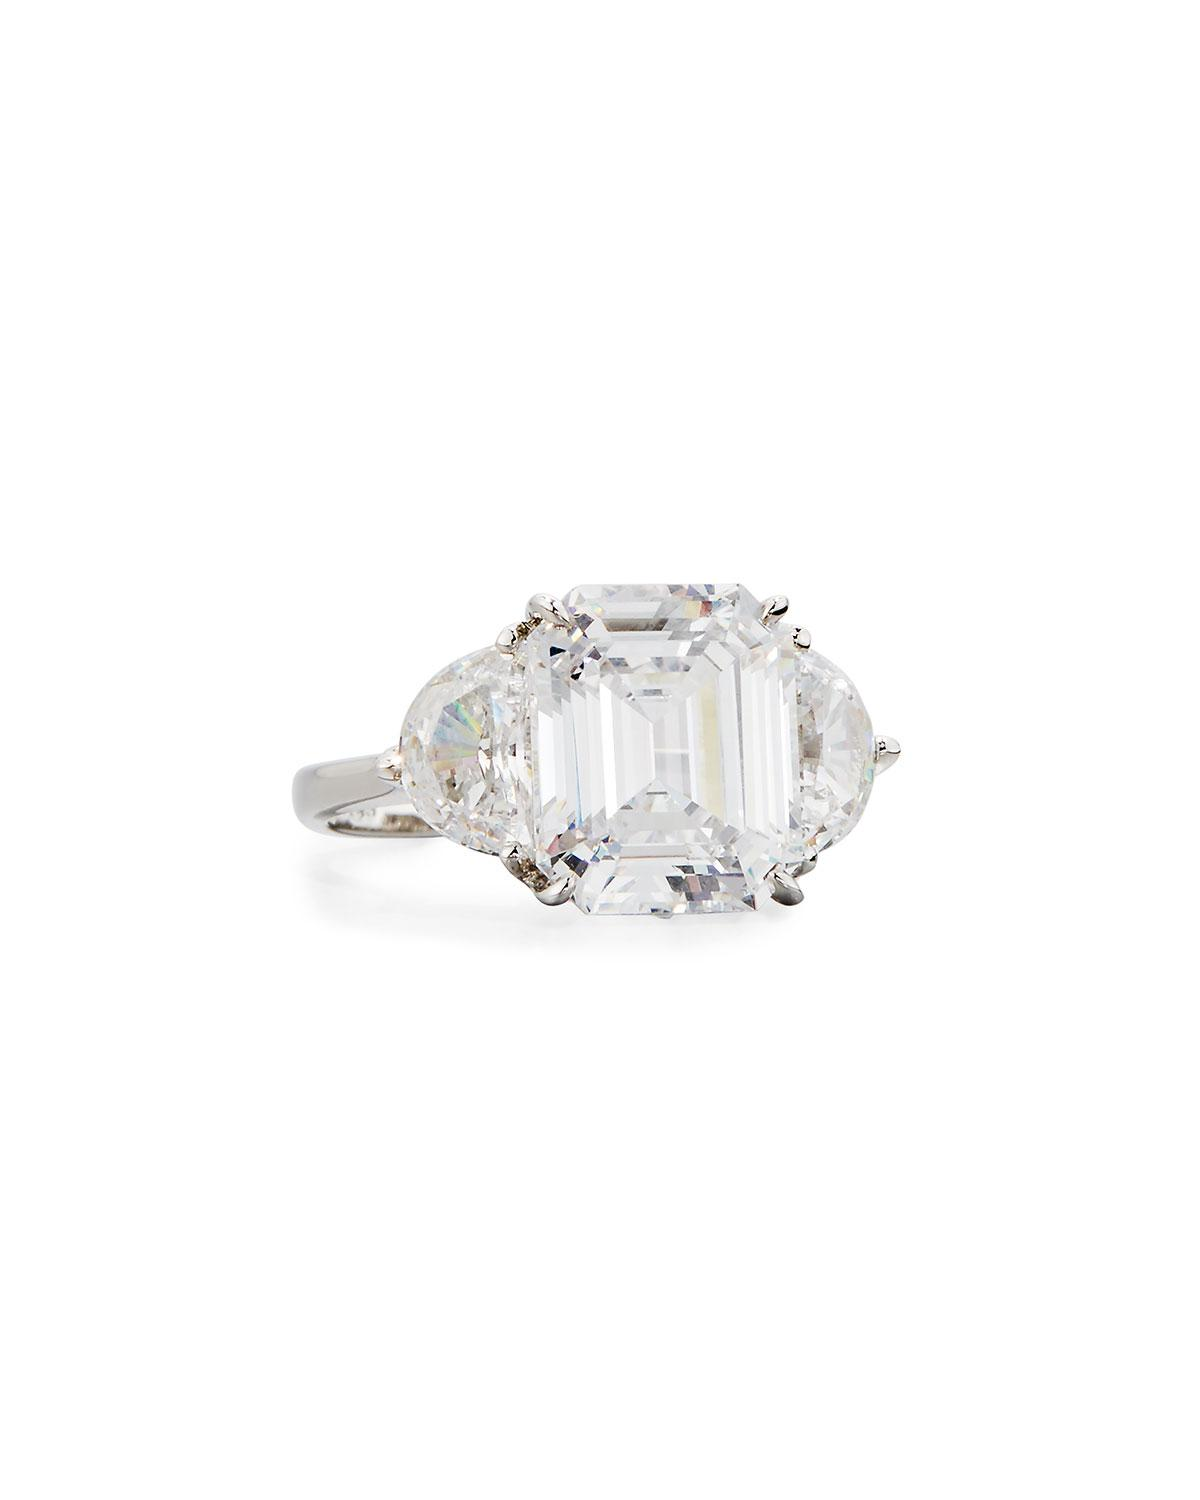 Fantasia Oval Cubic Zirconia Ring w/ Surrounding Crystals Rj9tO